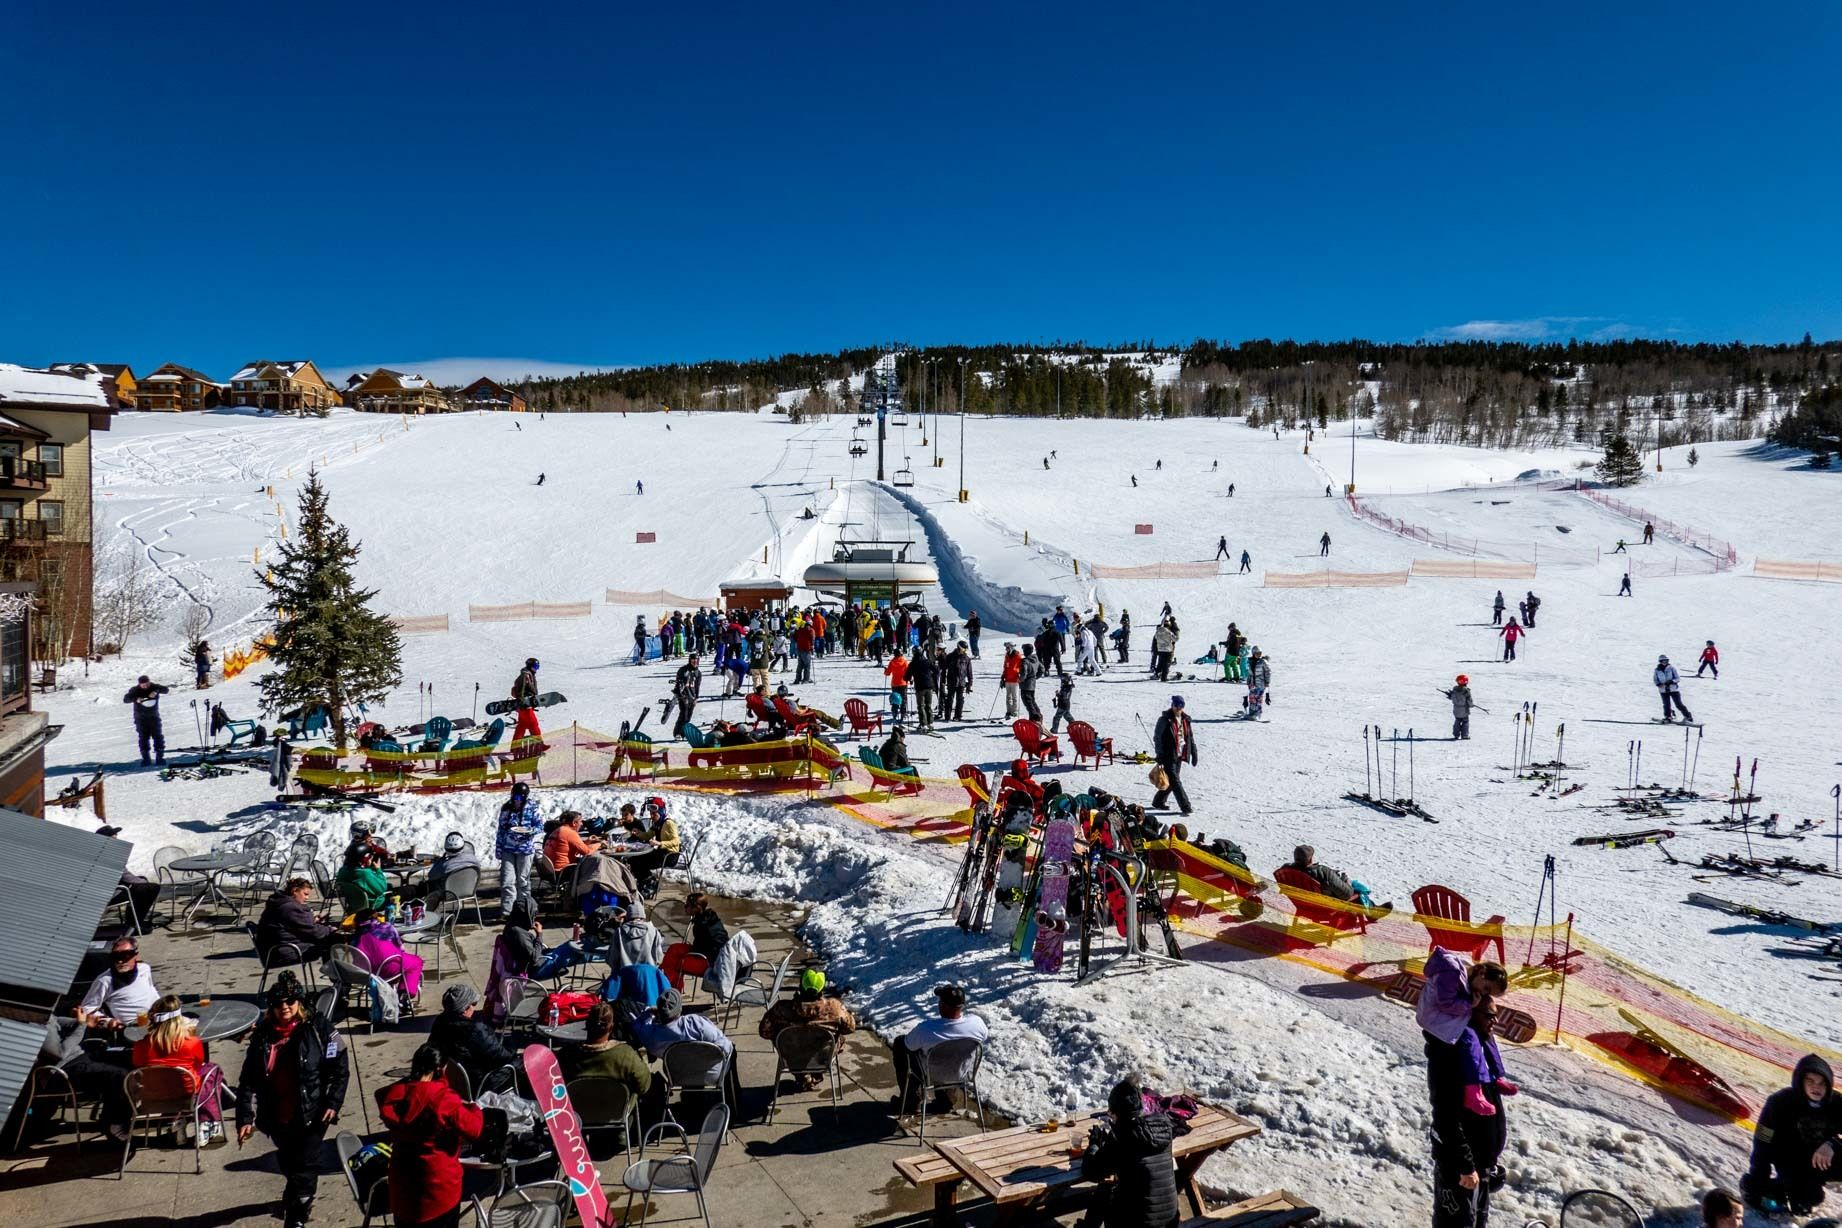 People at the base of a ski lift